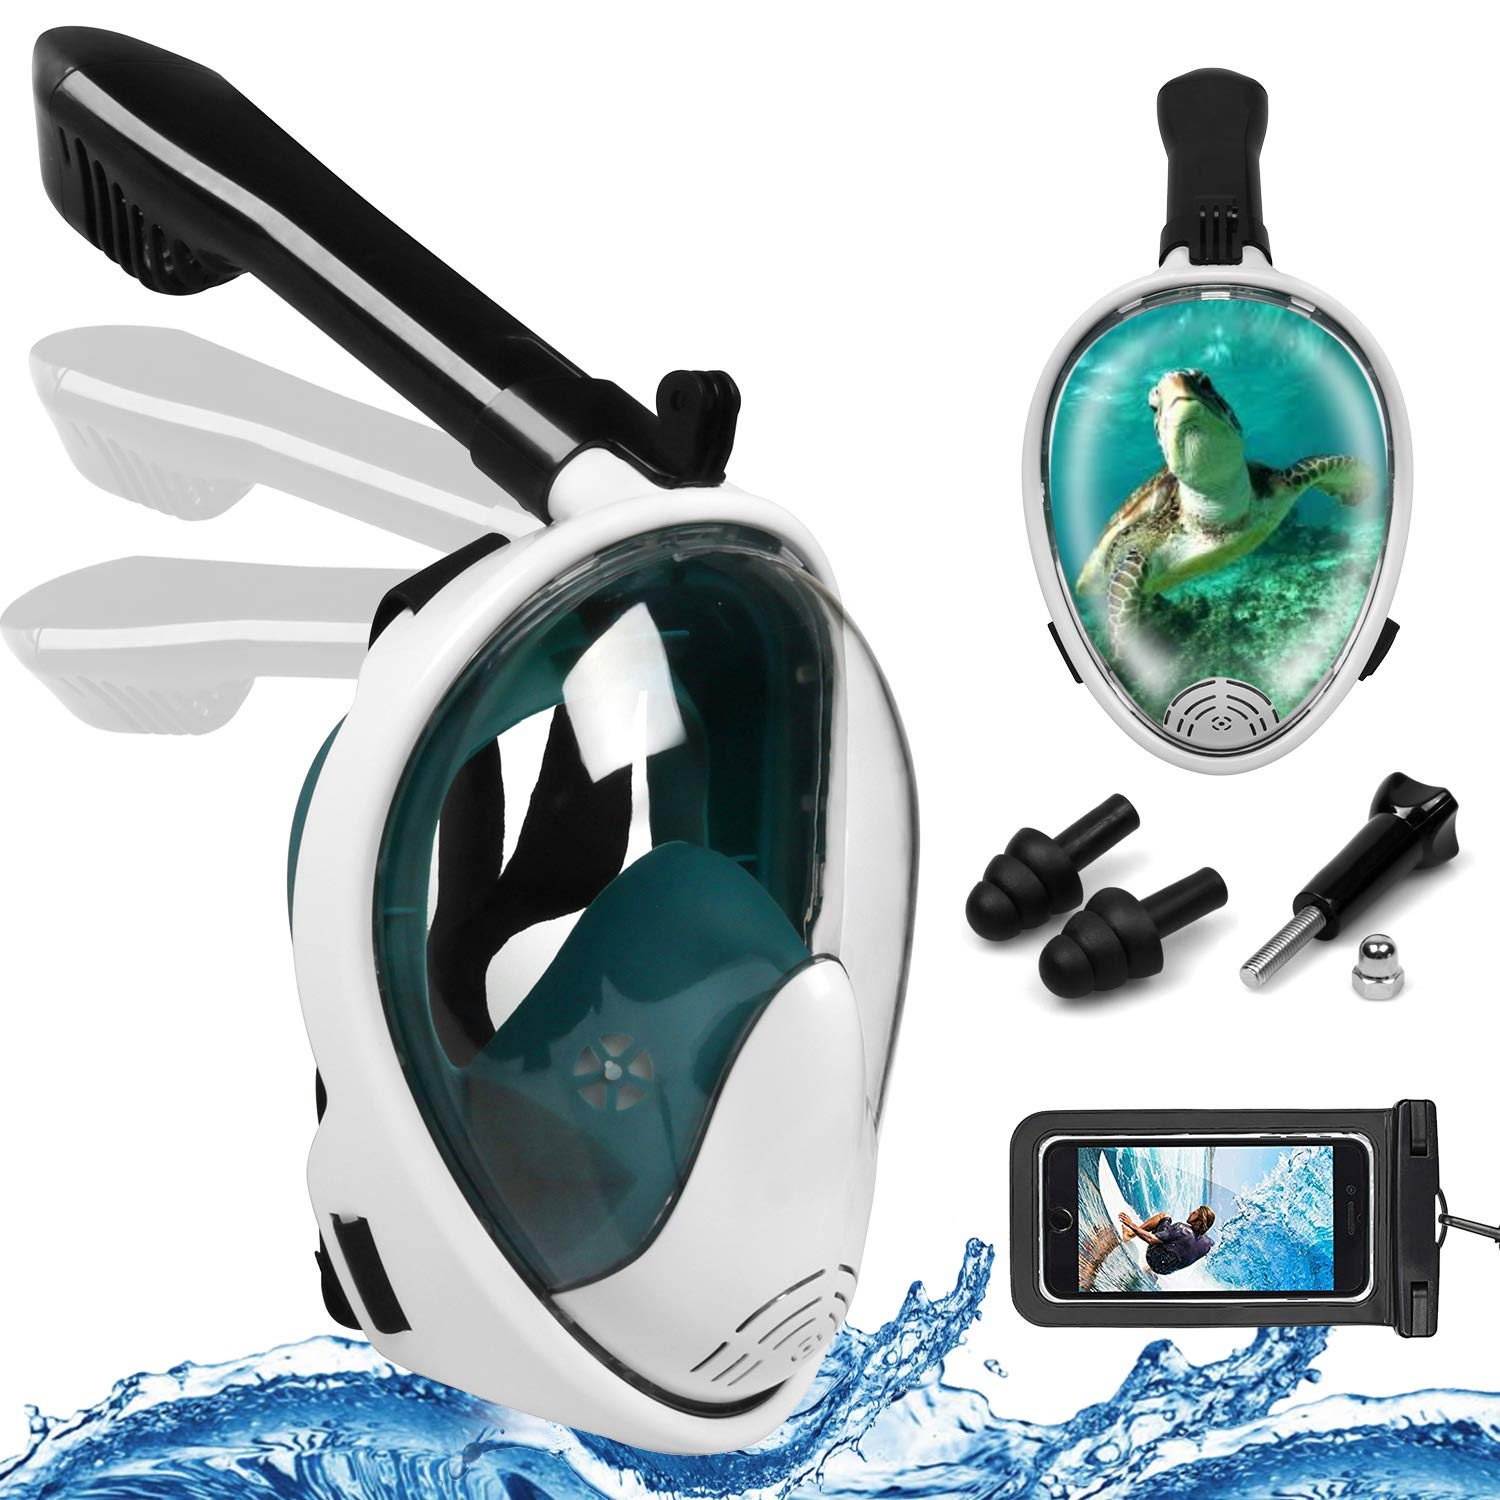 Foldable Full Face Snorkel Mask, 180° Panoramic View Scuba Diving Mask Perfect for Kids Swimming & Adult Diving (S/M, Dark Green)